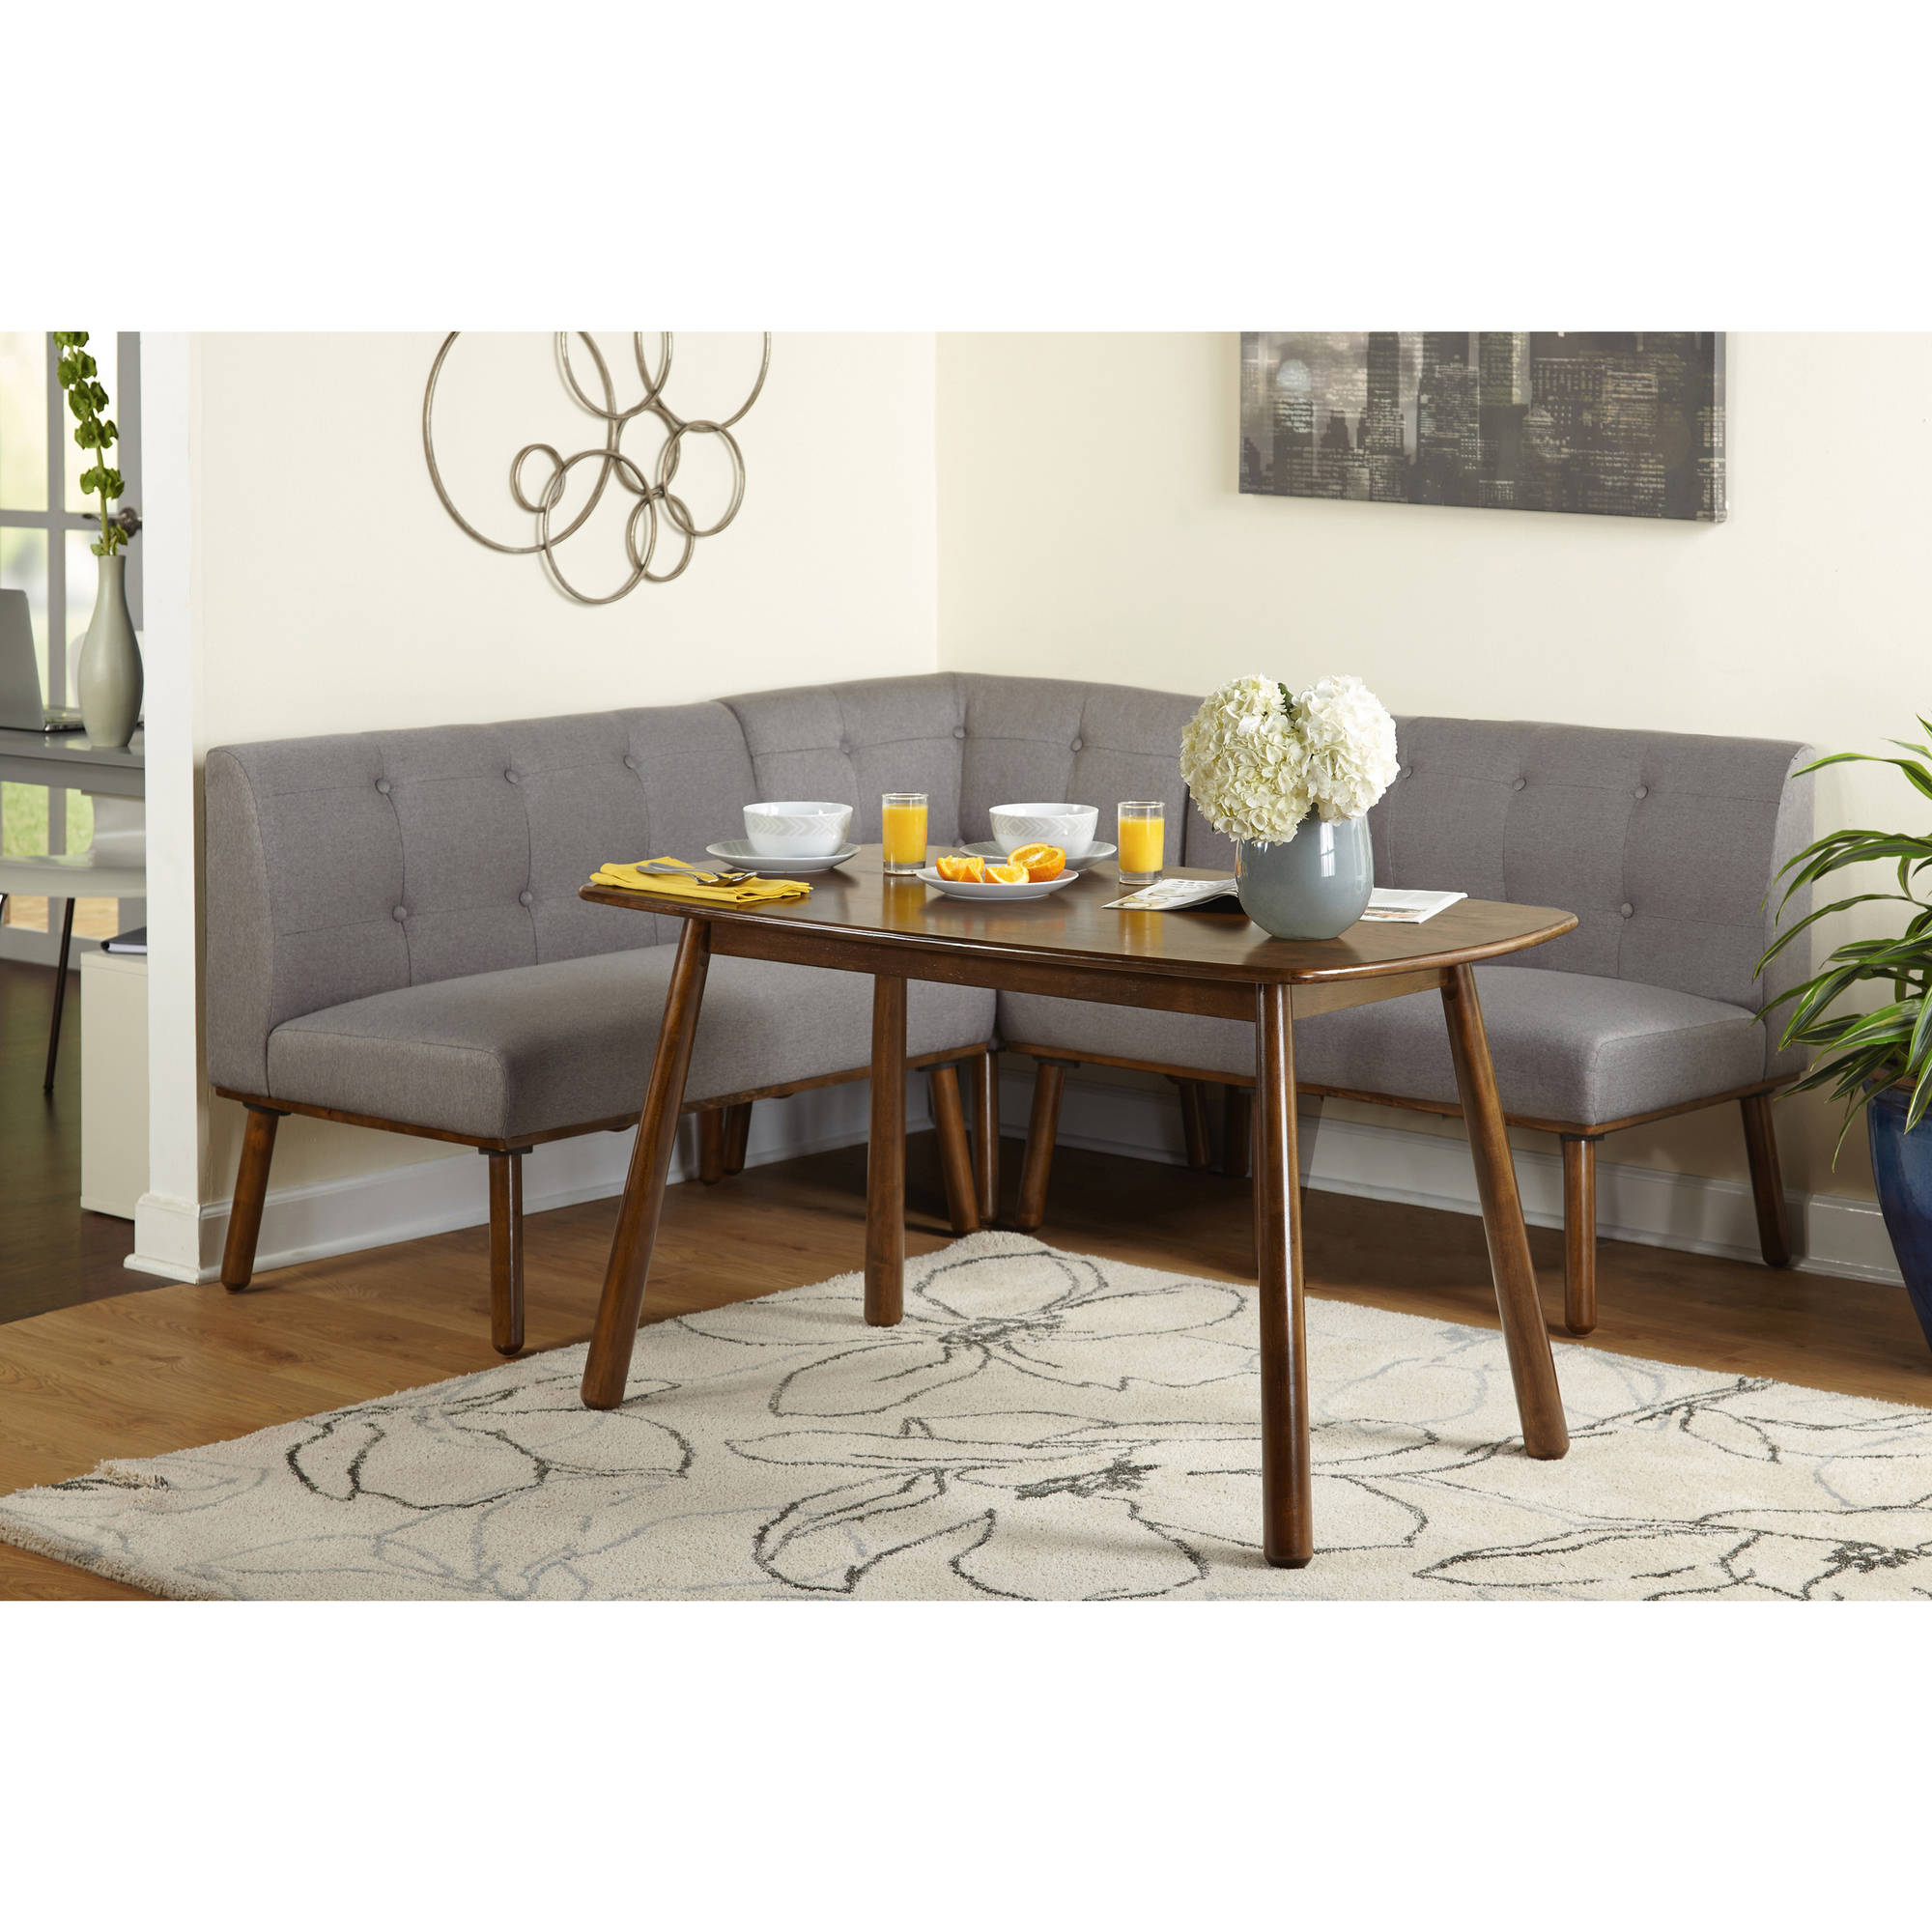 Maxwell Breakfast Nook 4-Piece Corner Dining Set, Multiple Colors -  Traveller Location